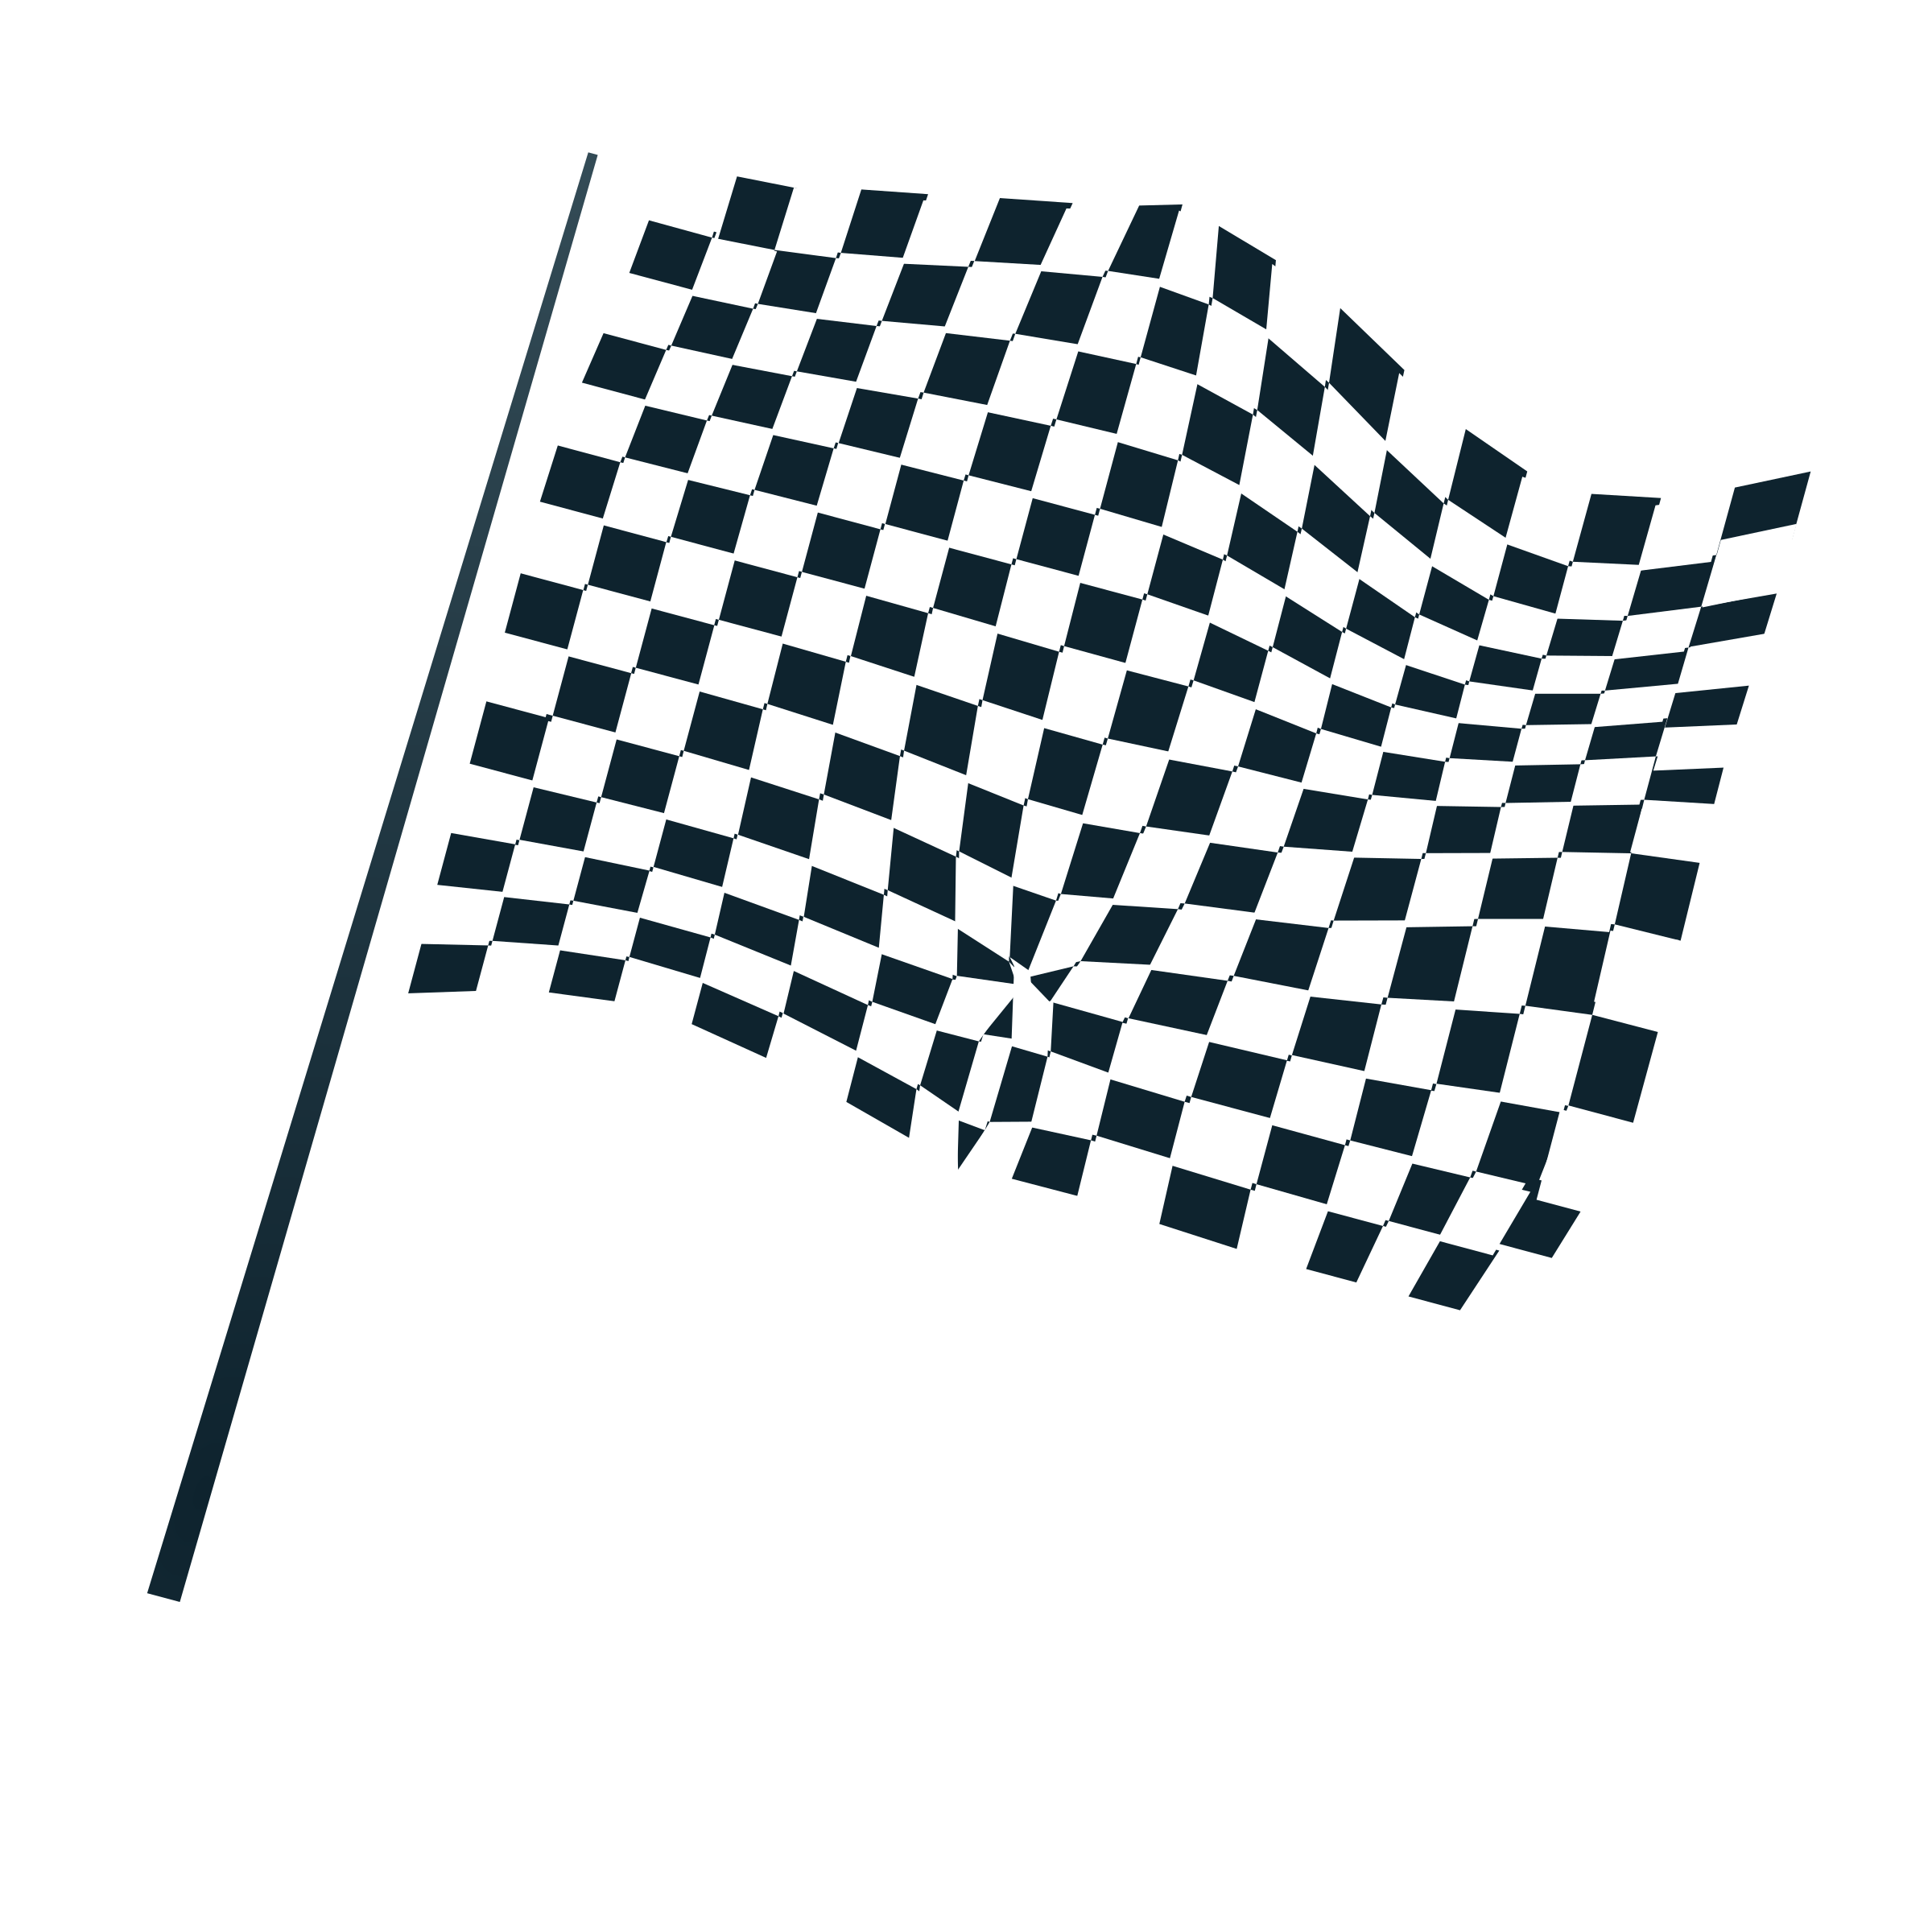 chequered flag icon by netalloy